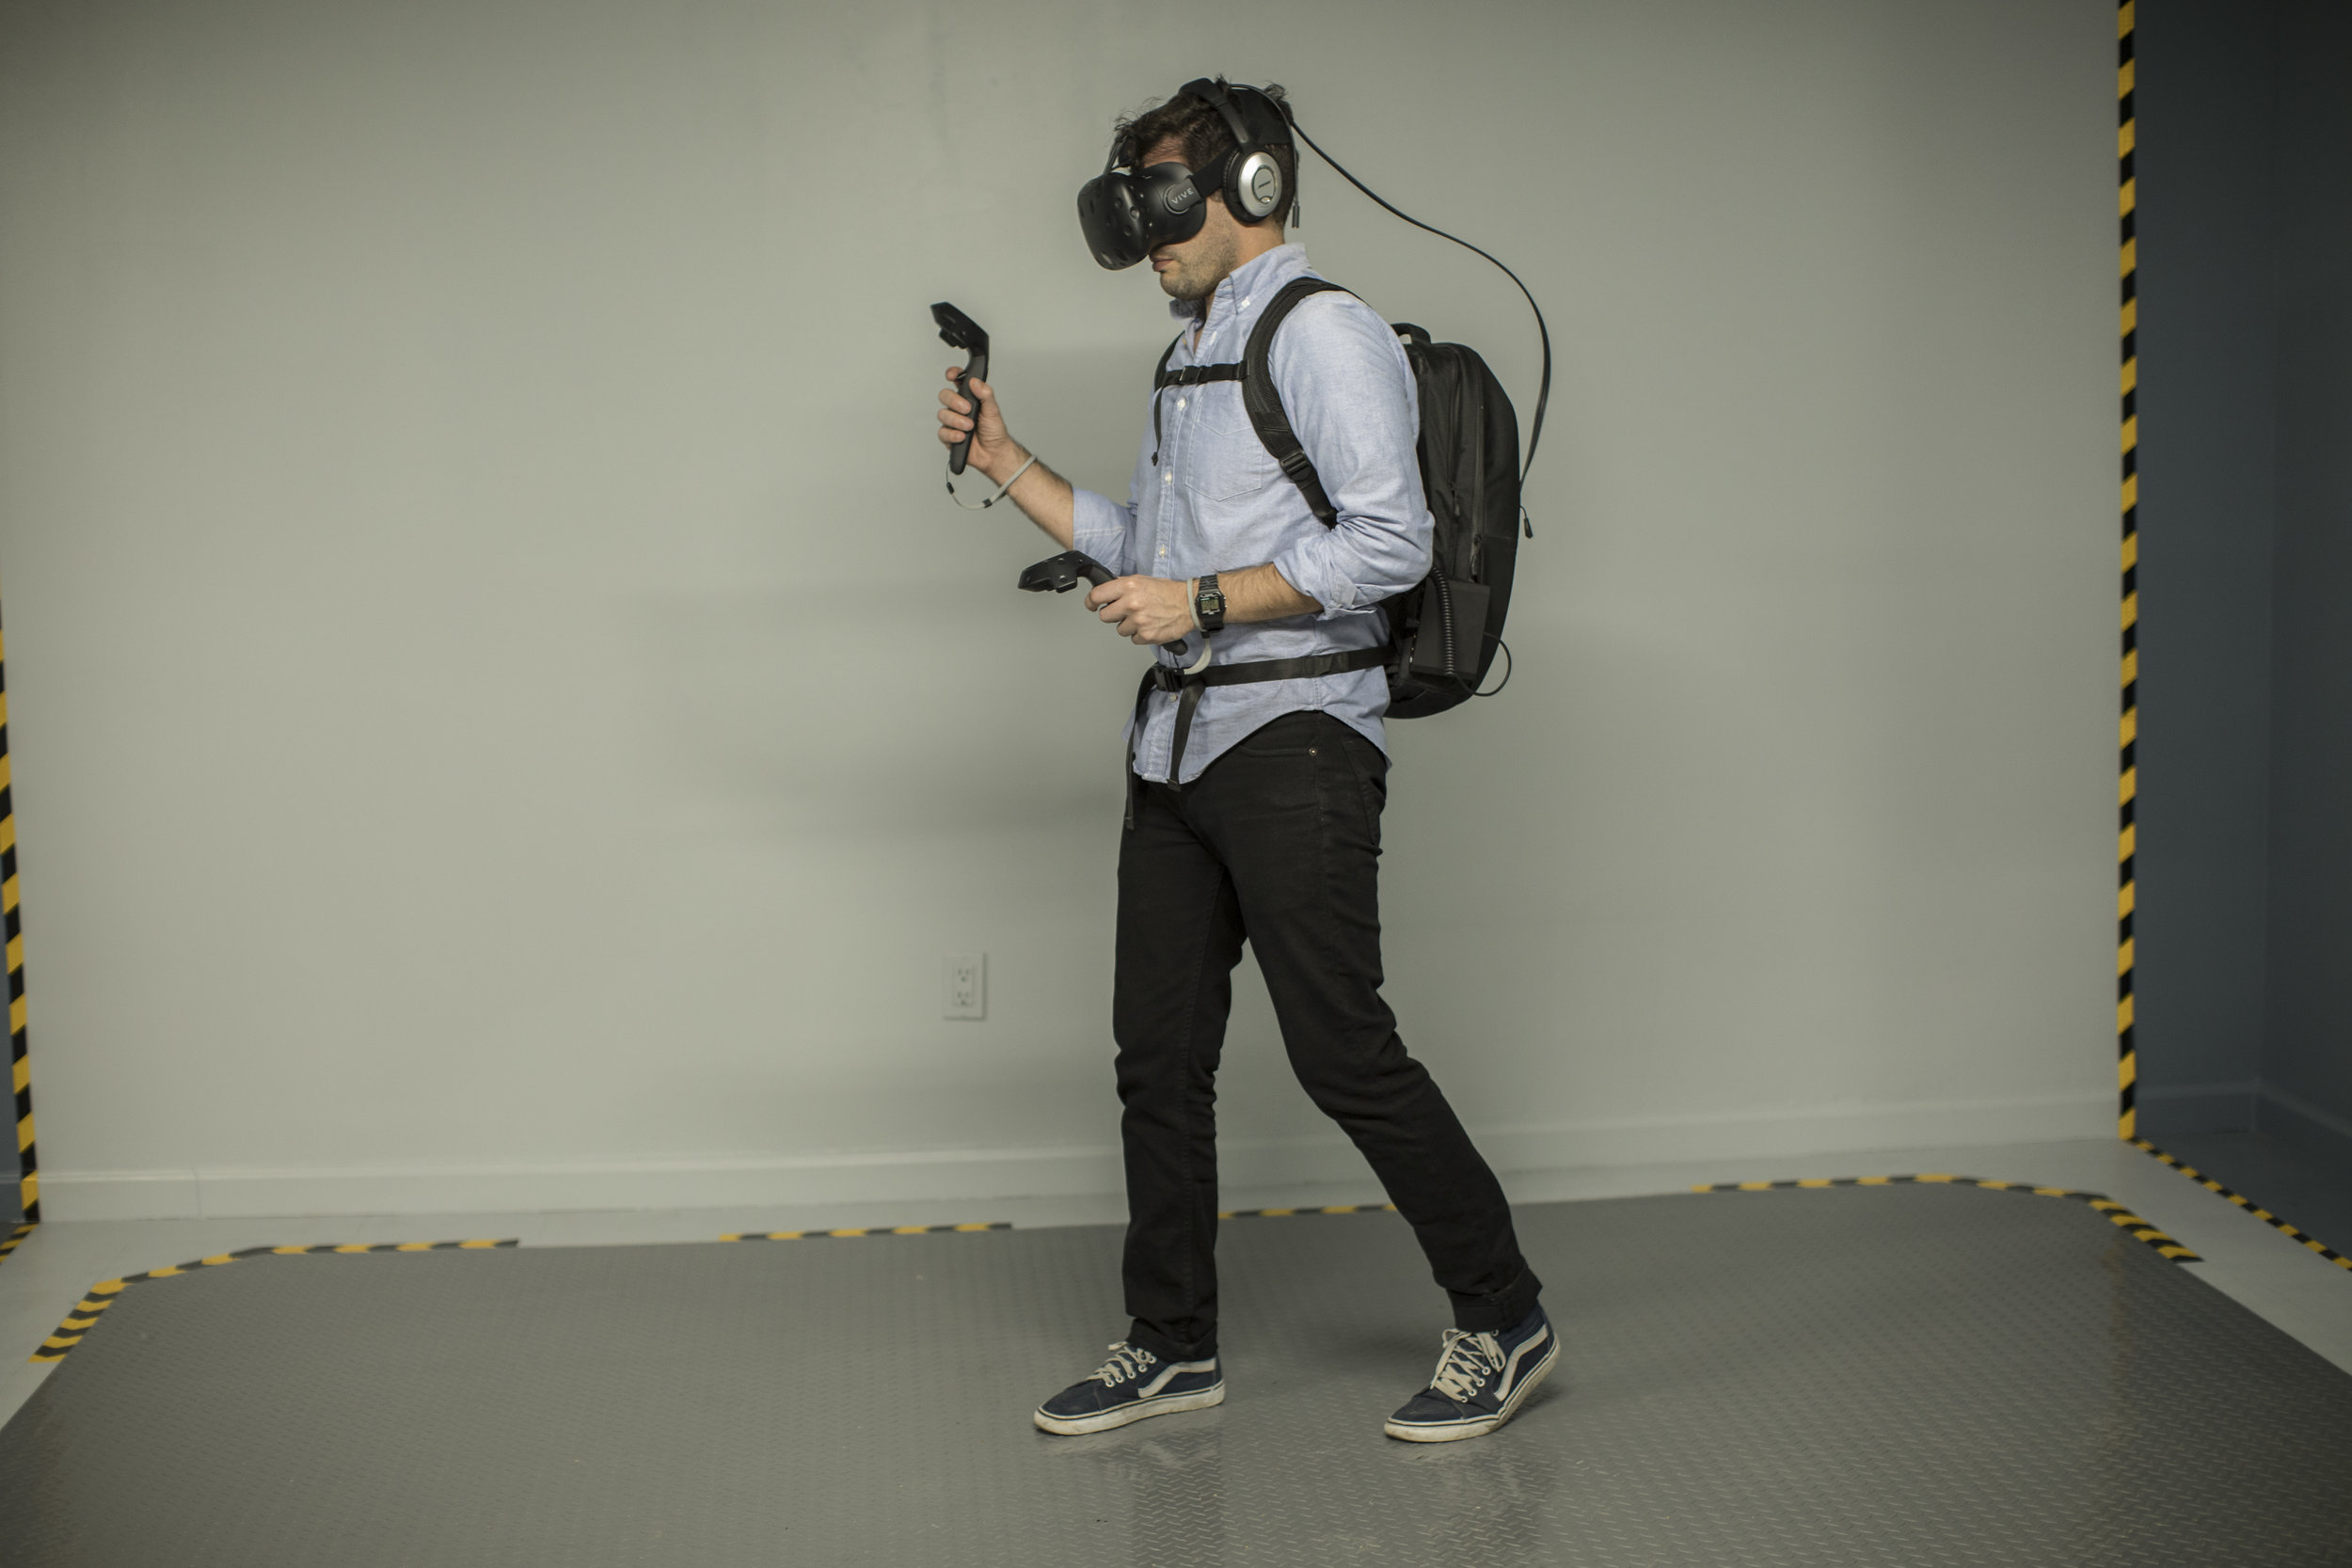 WIRELESS VR WITH BACKPACK PCS     Experience a liberating way to play VR in a 100 sqft play area.   Learn More!      BACKPACK GAMES     Beat Saber, Superhot VR, Arizona Sunshine and more.   See All Backpack Games!